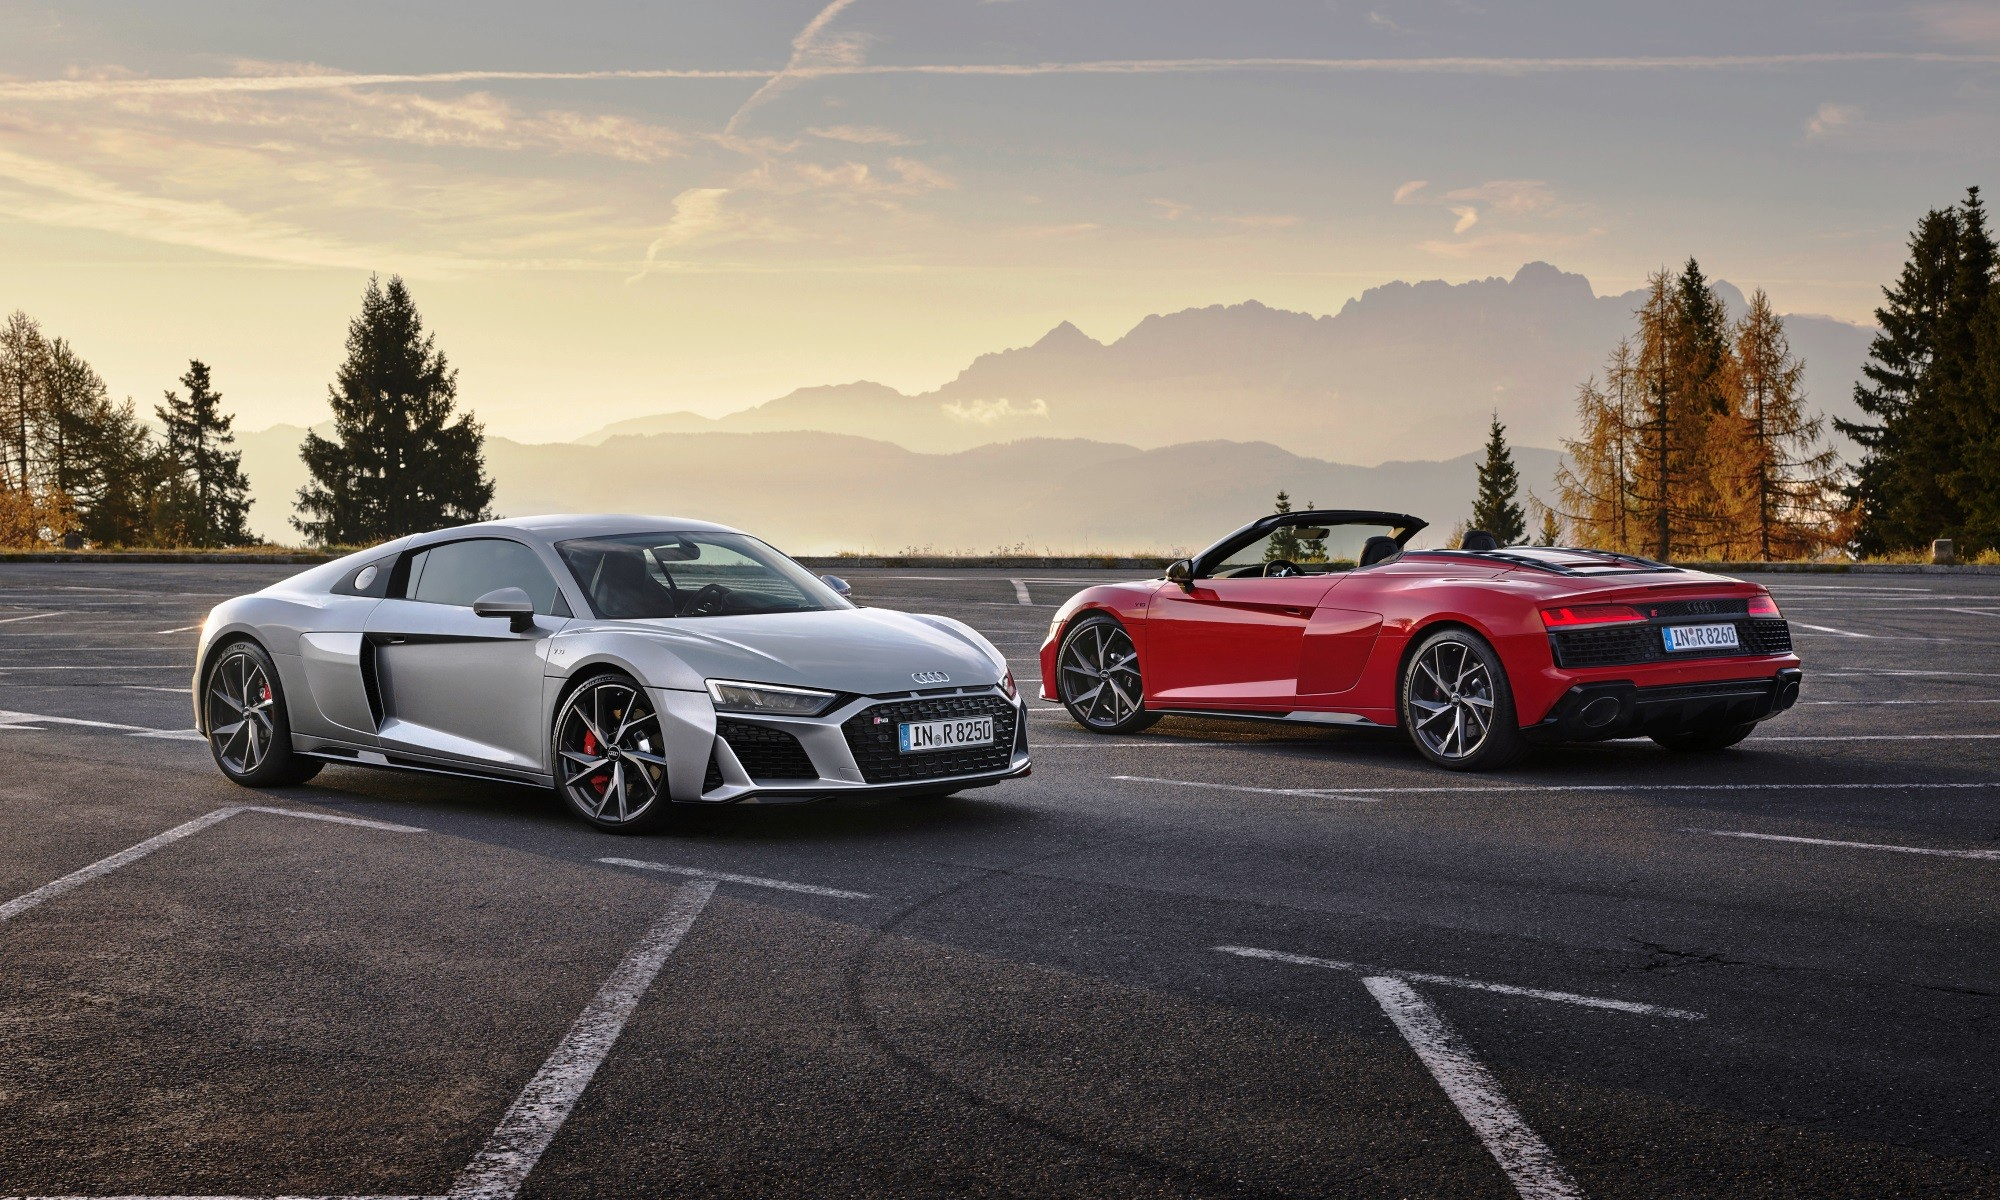 Audi R8 V10 RWD Coupé and Spyder